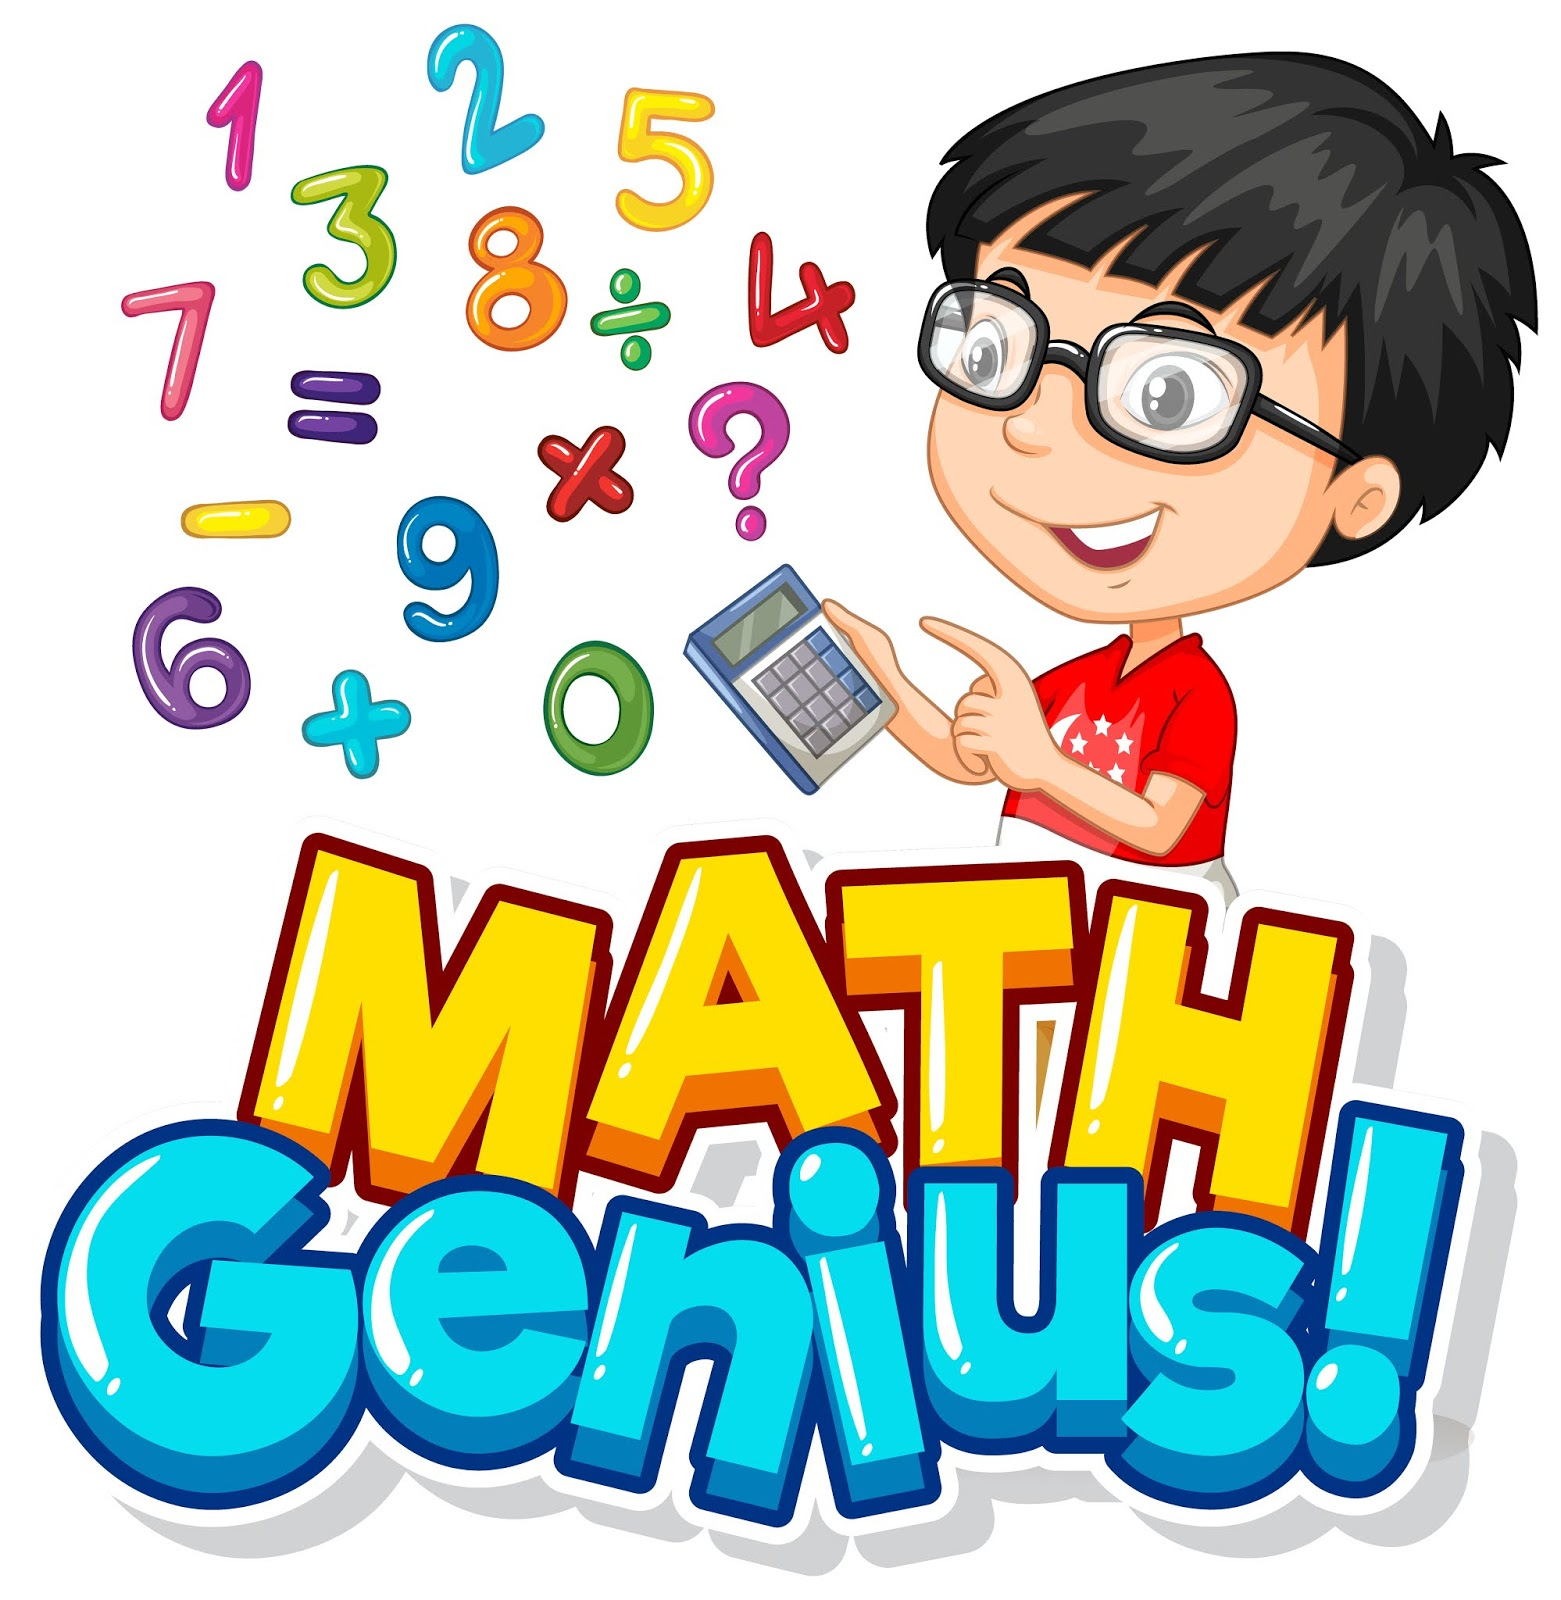 Font Design Math Genius With Boy Numbers Free Download Vector CDR, AI, EPS and PNG Formats